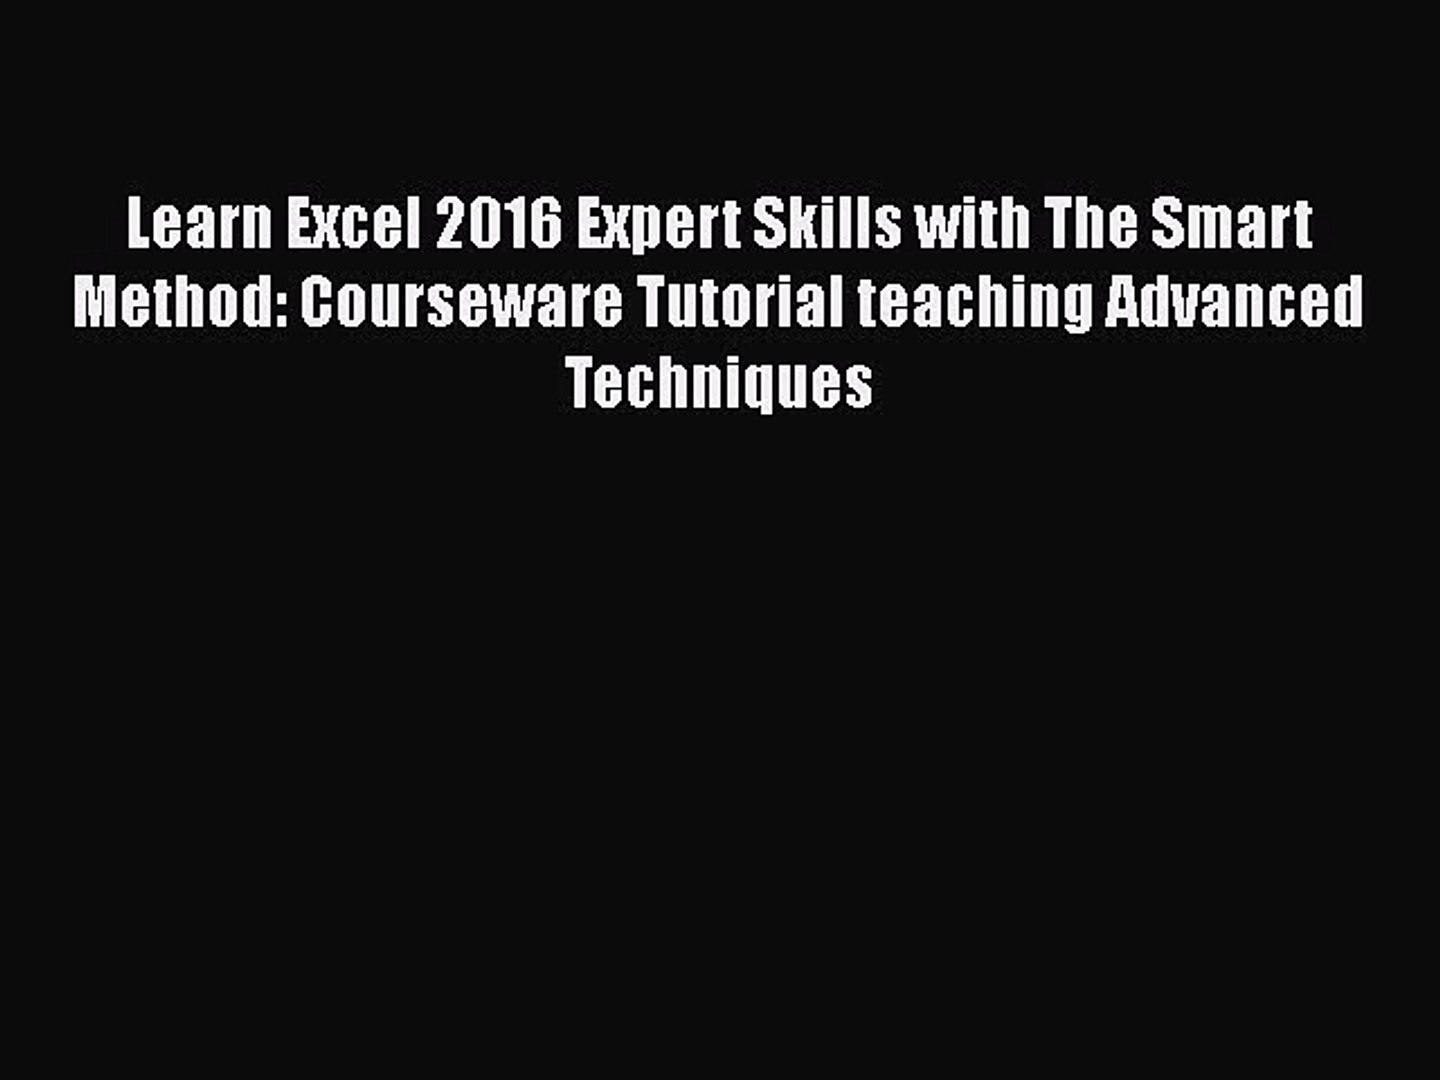 [PDF] Learn Excel 2016 Expert Skills with The Smart Method: Courseware  Tutorial teaching Advanced